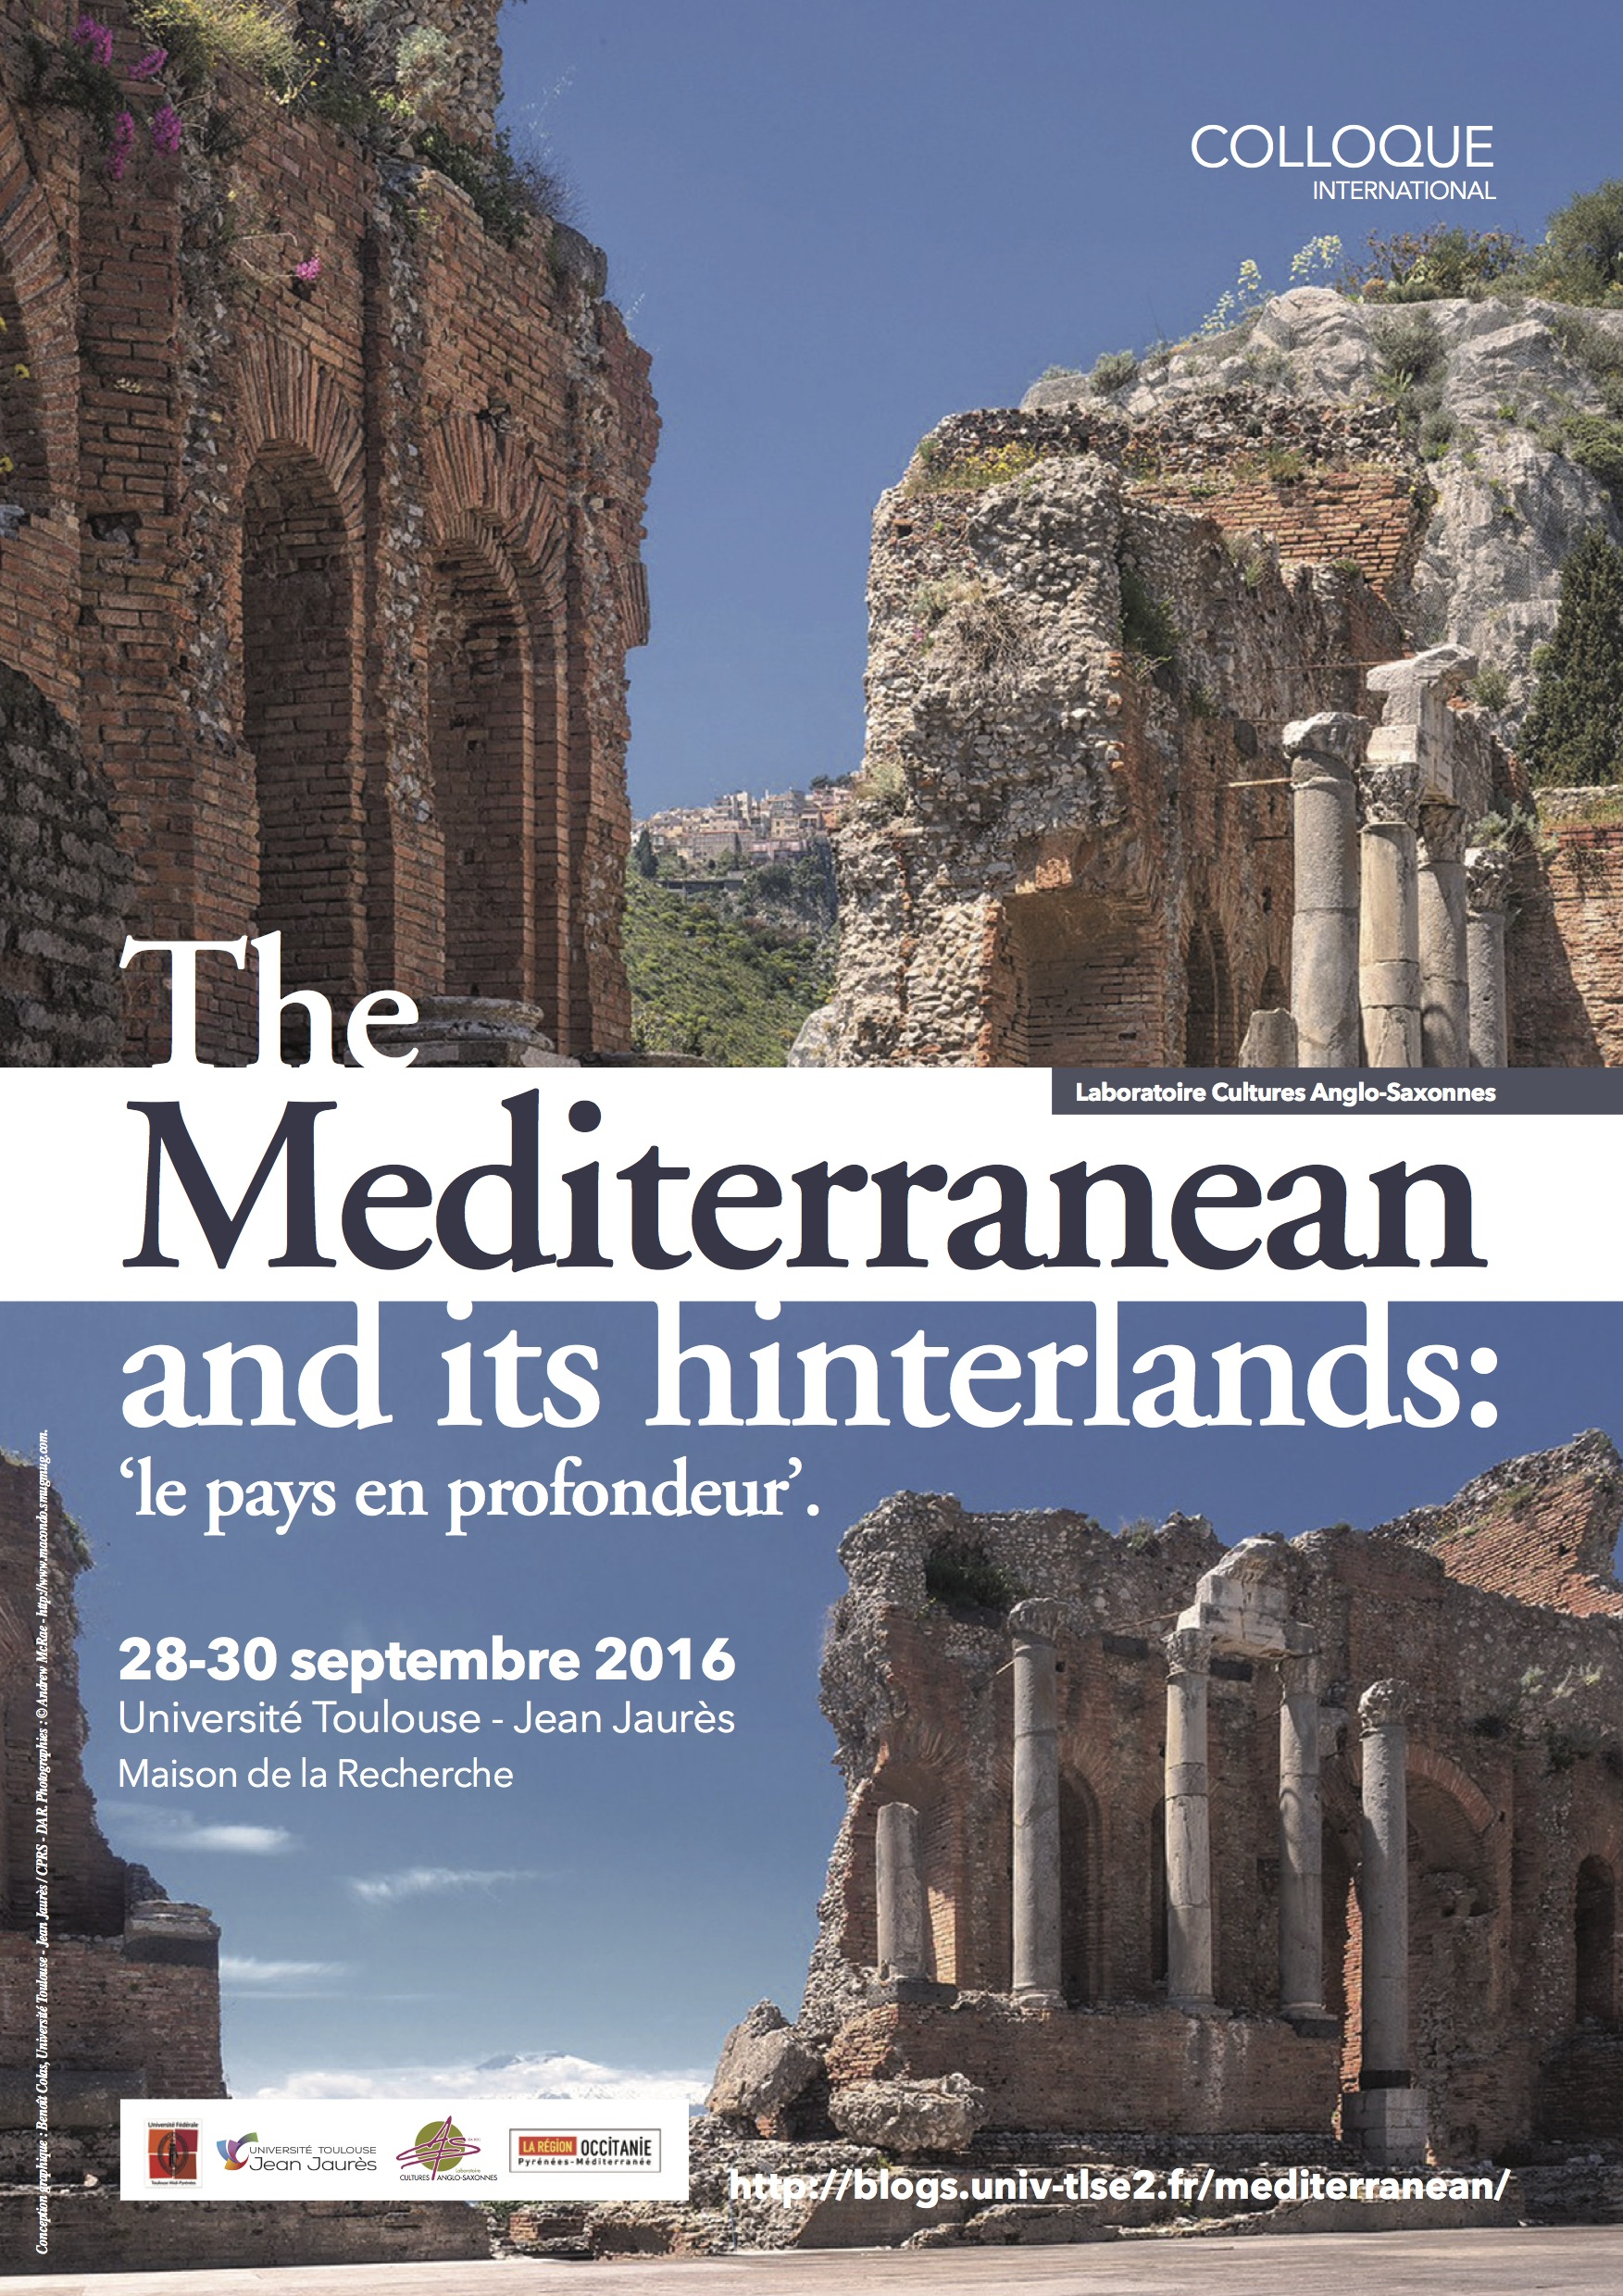 Axe 2 affiche colloque The Mediterranean and its hinterlands.jpg